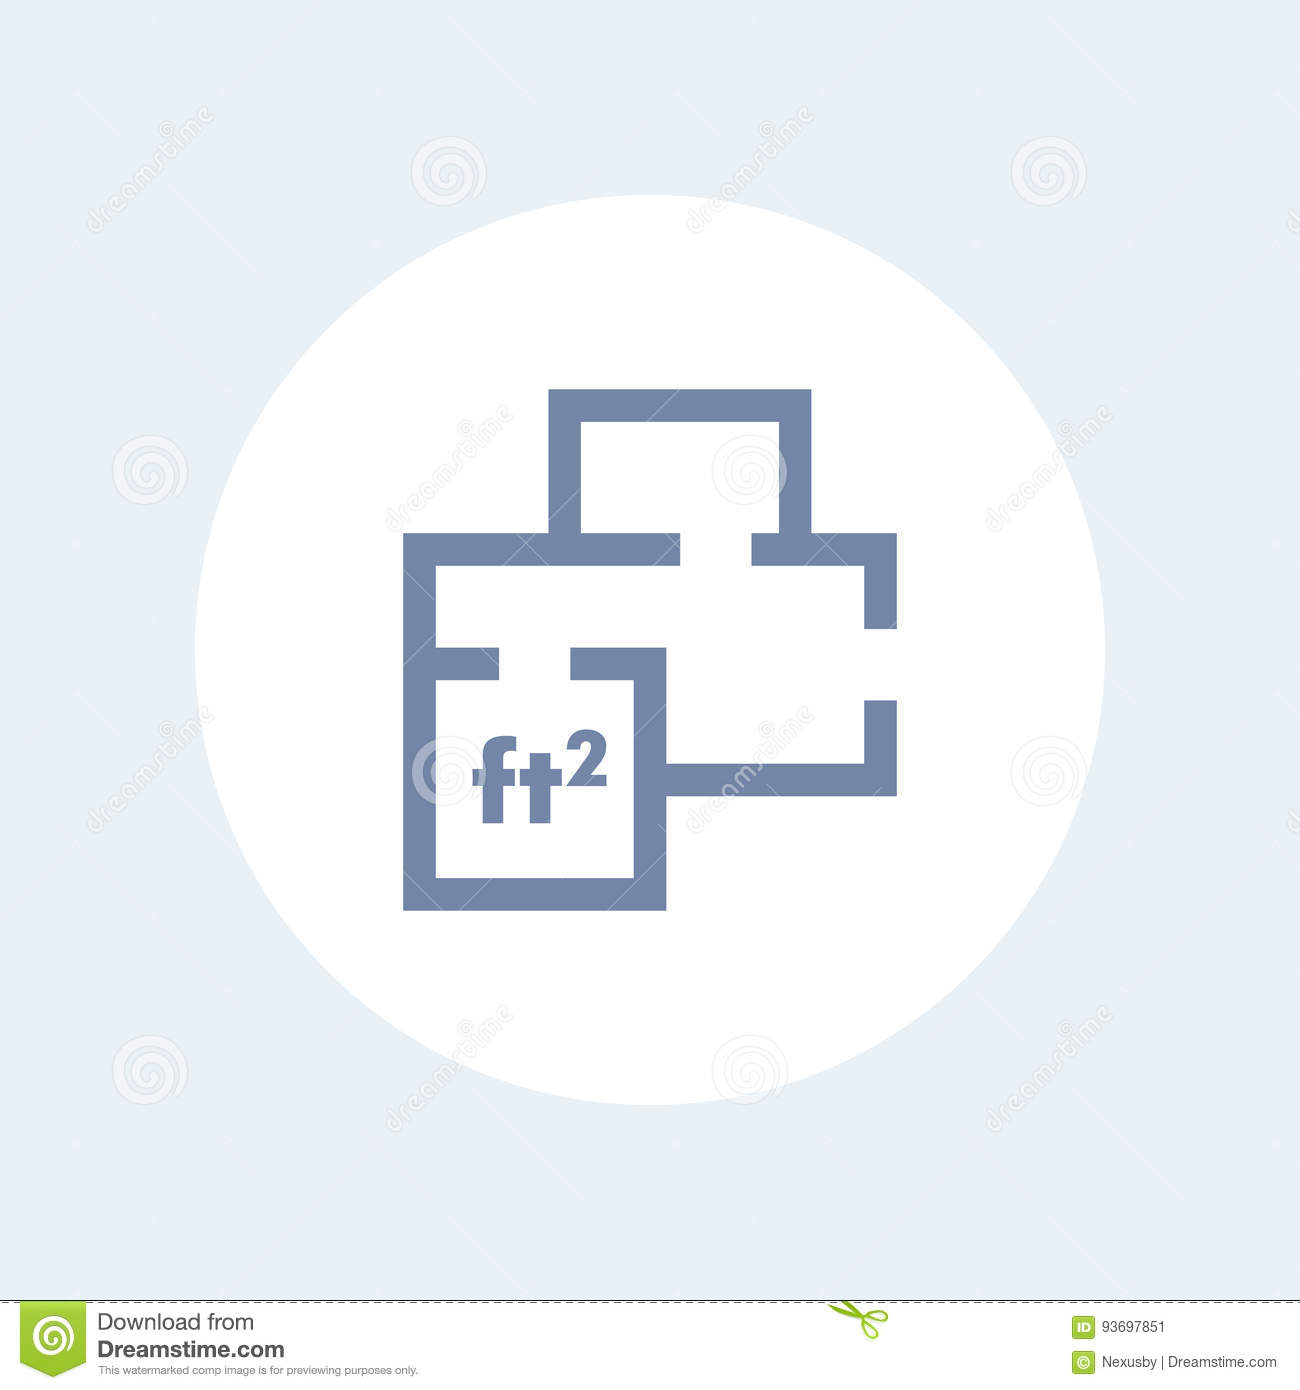 Apartment Room Layout home plan icon, apartment, room layout stock vector - image: 93697851